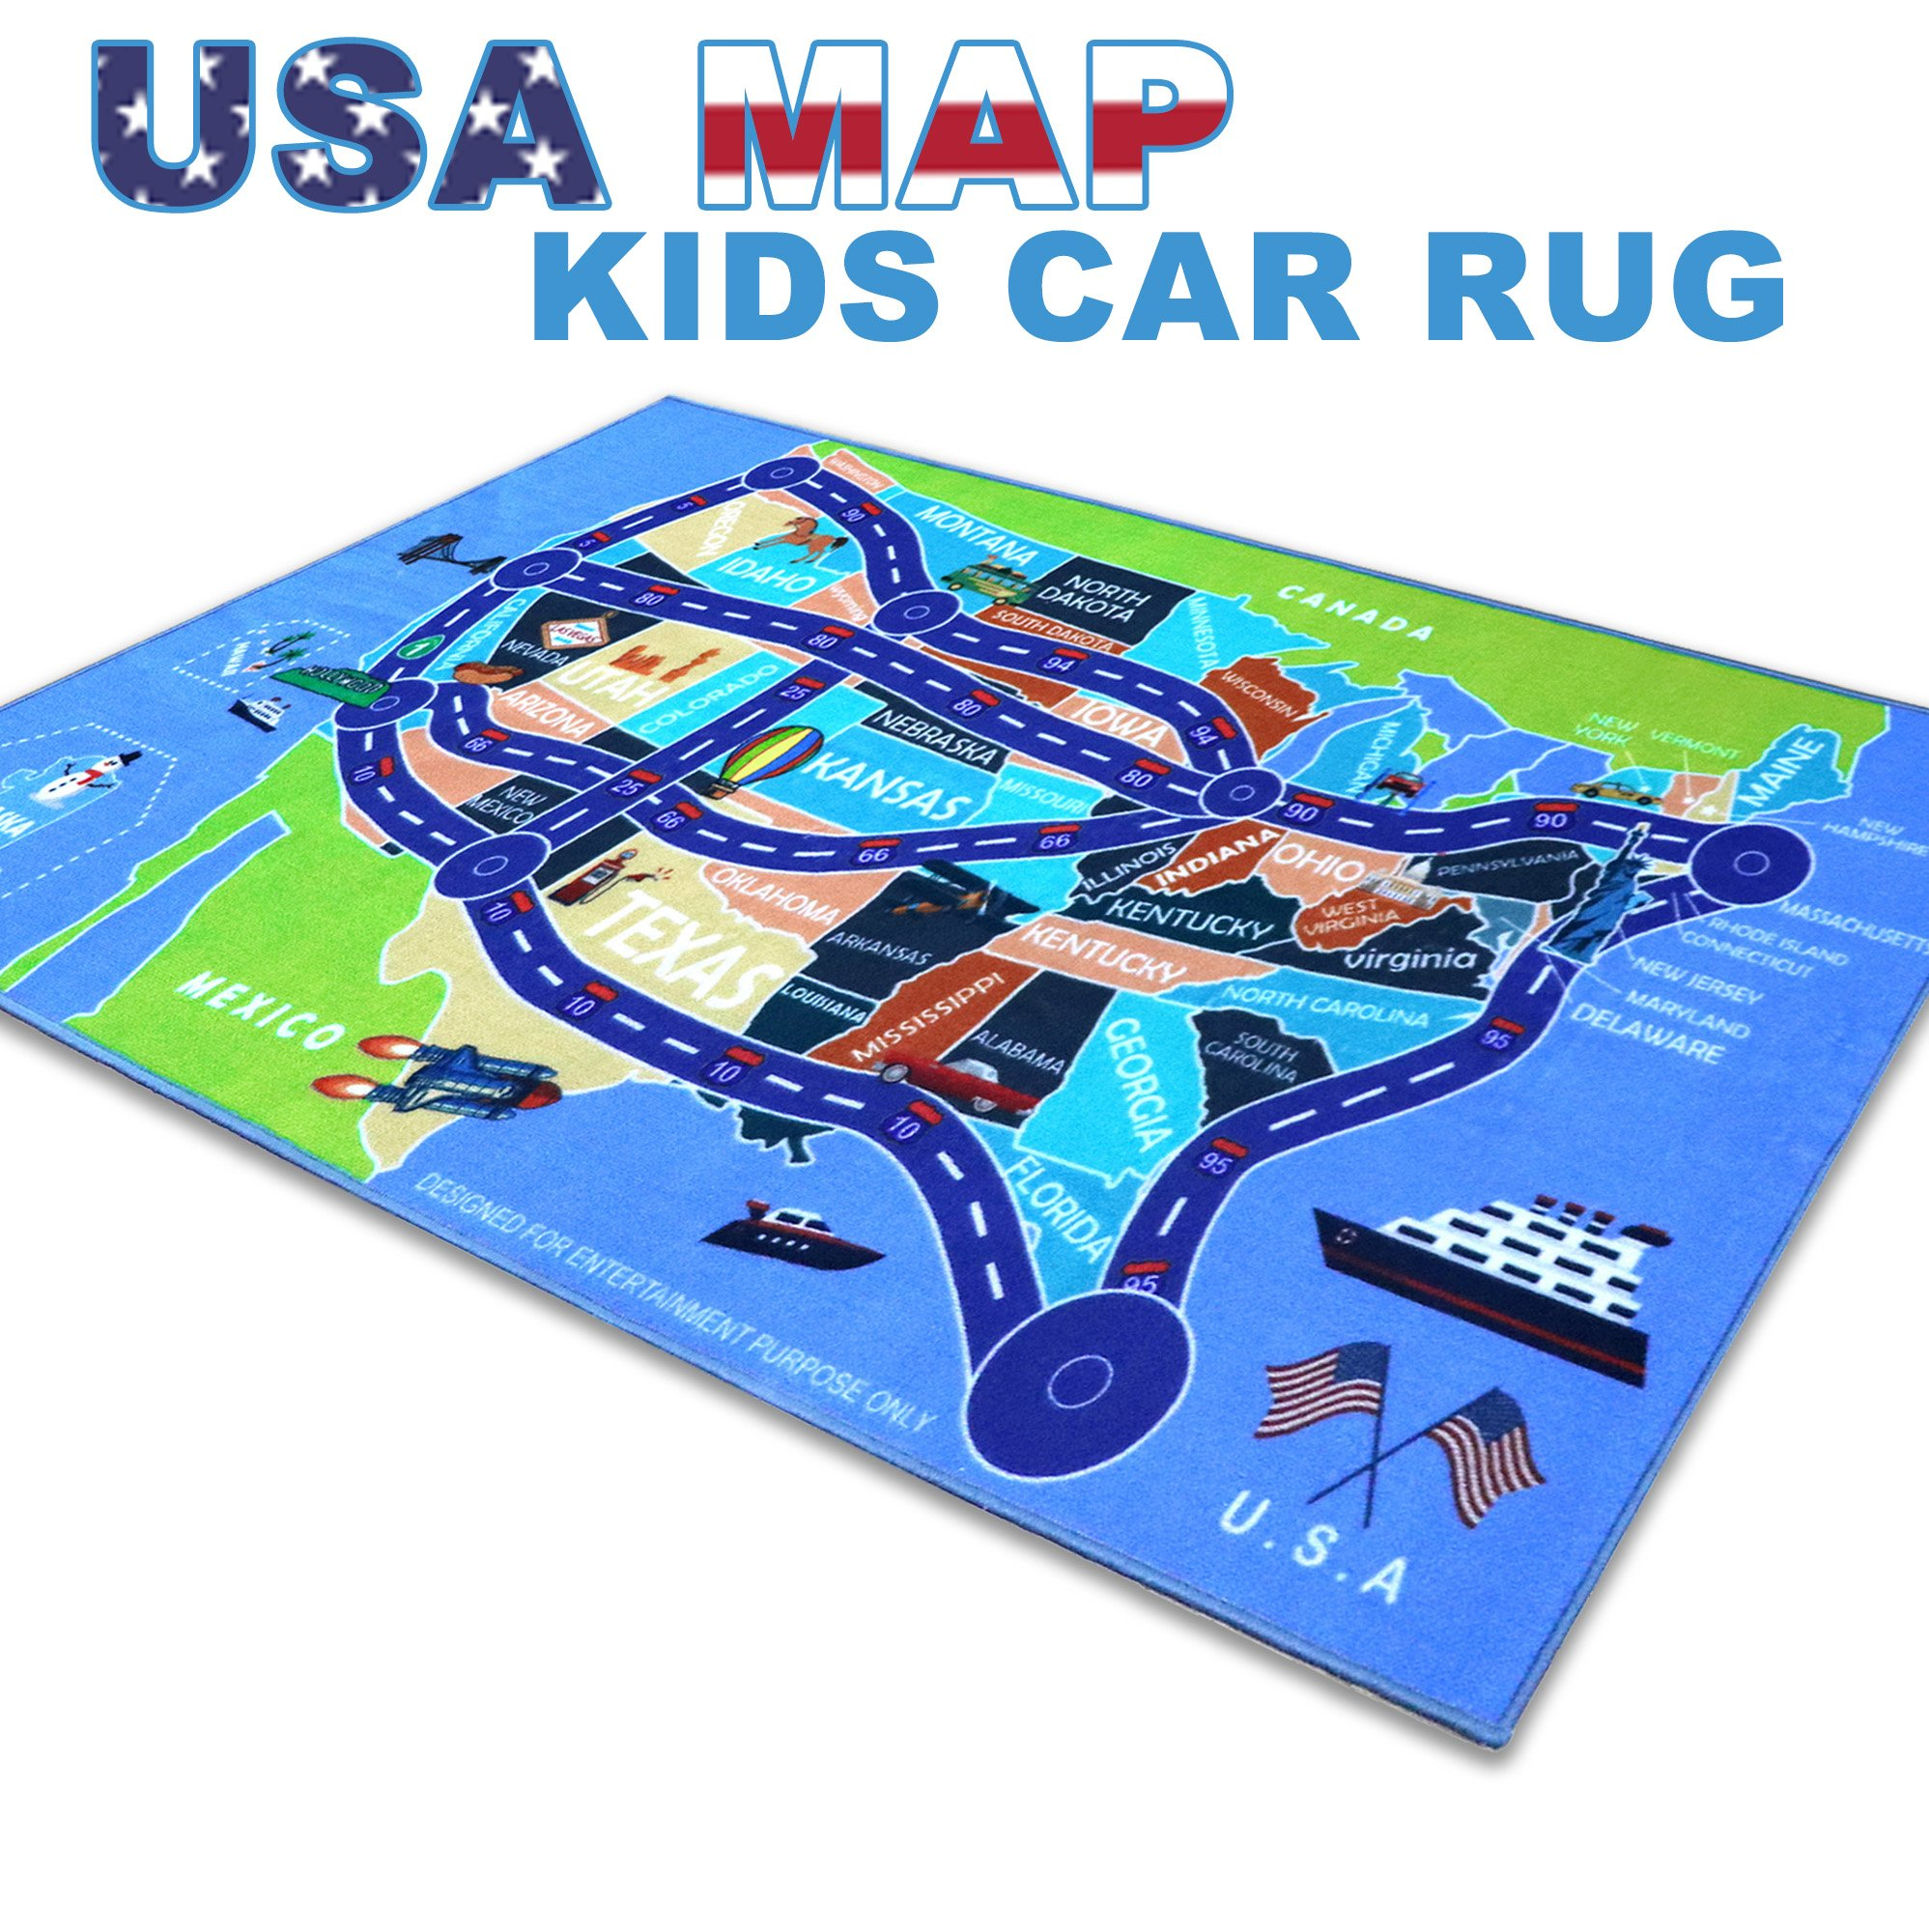 2018 Kids Rug Area Play Mat Car Carpet with Road 4' 11'' X 2' 7'' Map of USA--High Definition(HD) with Non-Slip Backing Nontoxic for Playroom Bedroom Classroom Toy & Game